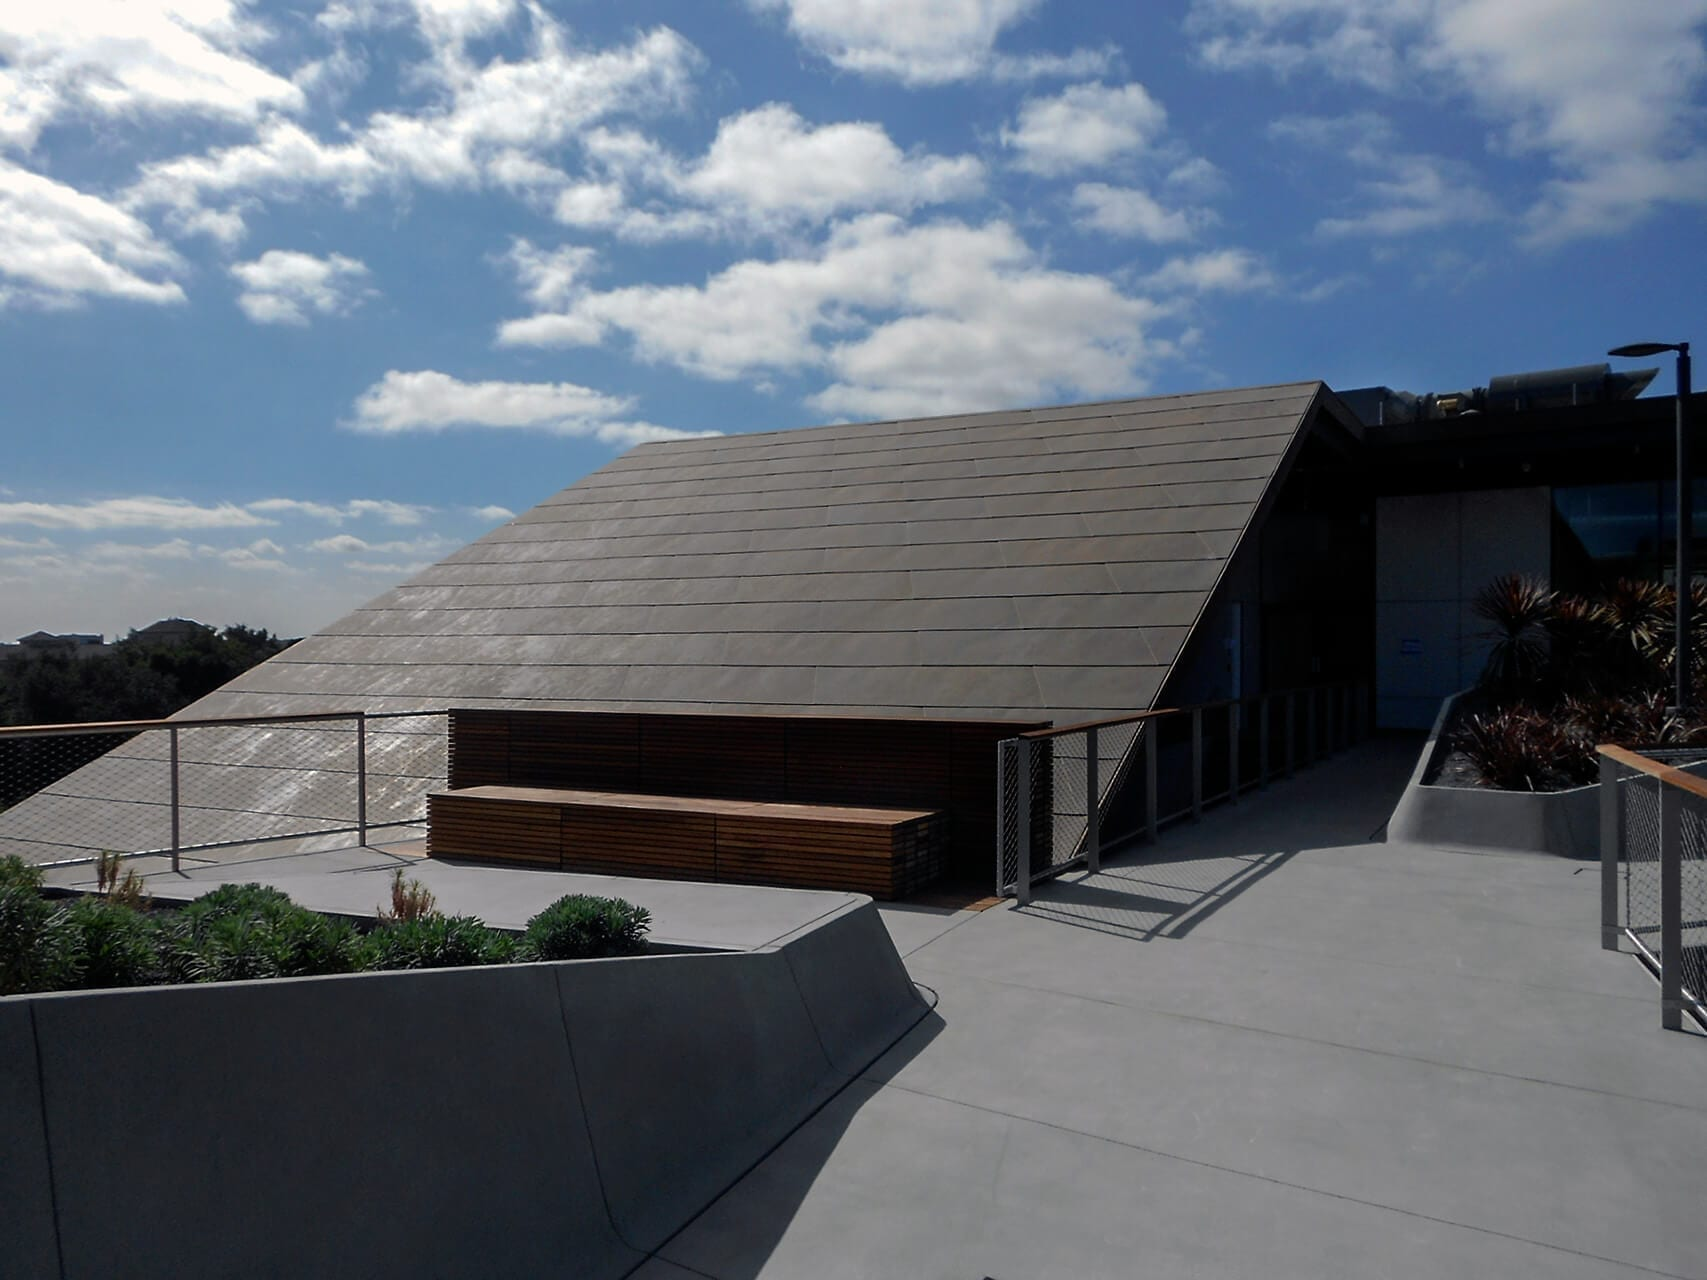 Zinc roof with a custom patina, McMurtry Building in California.